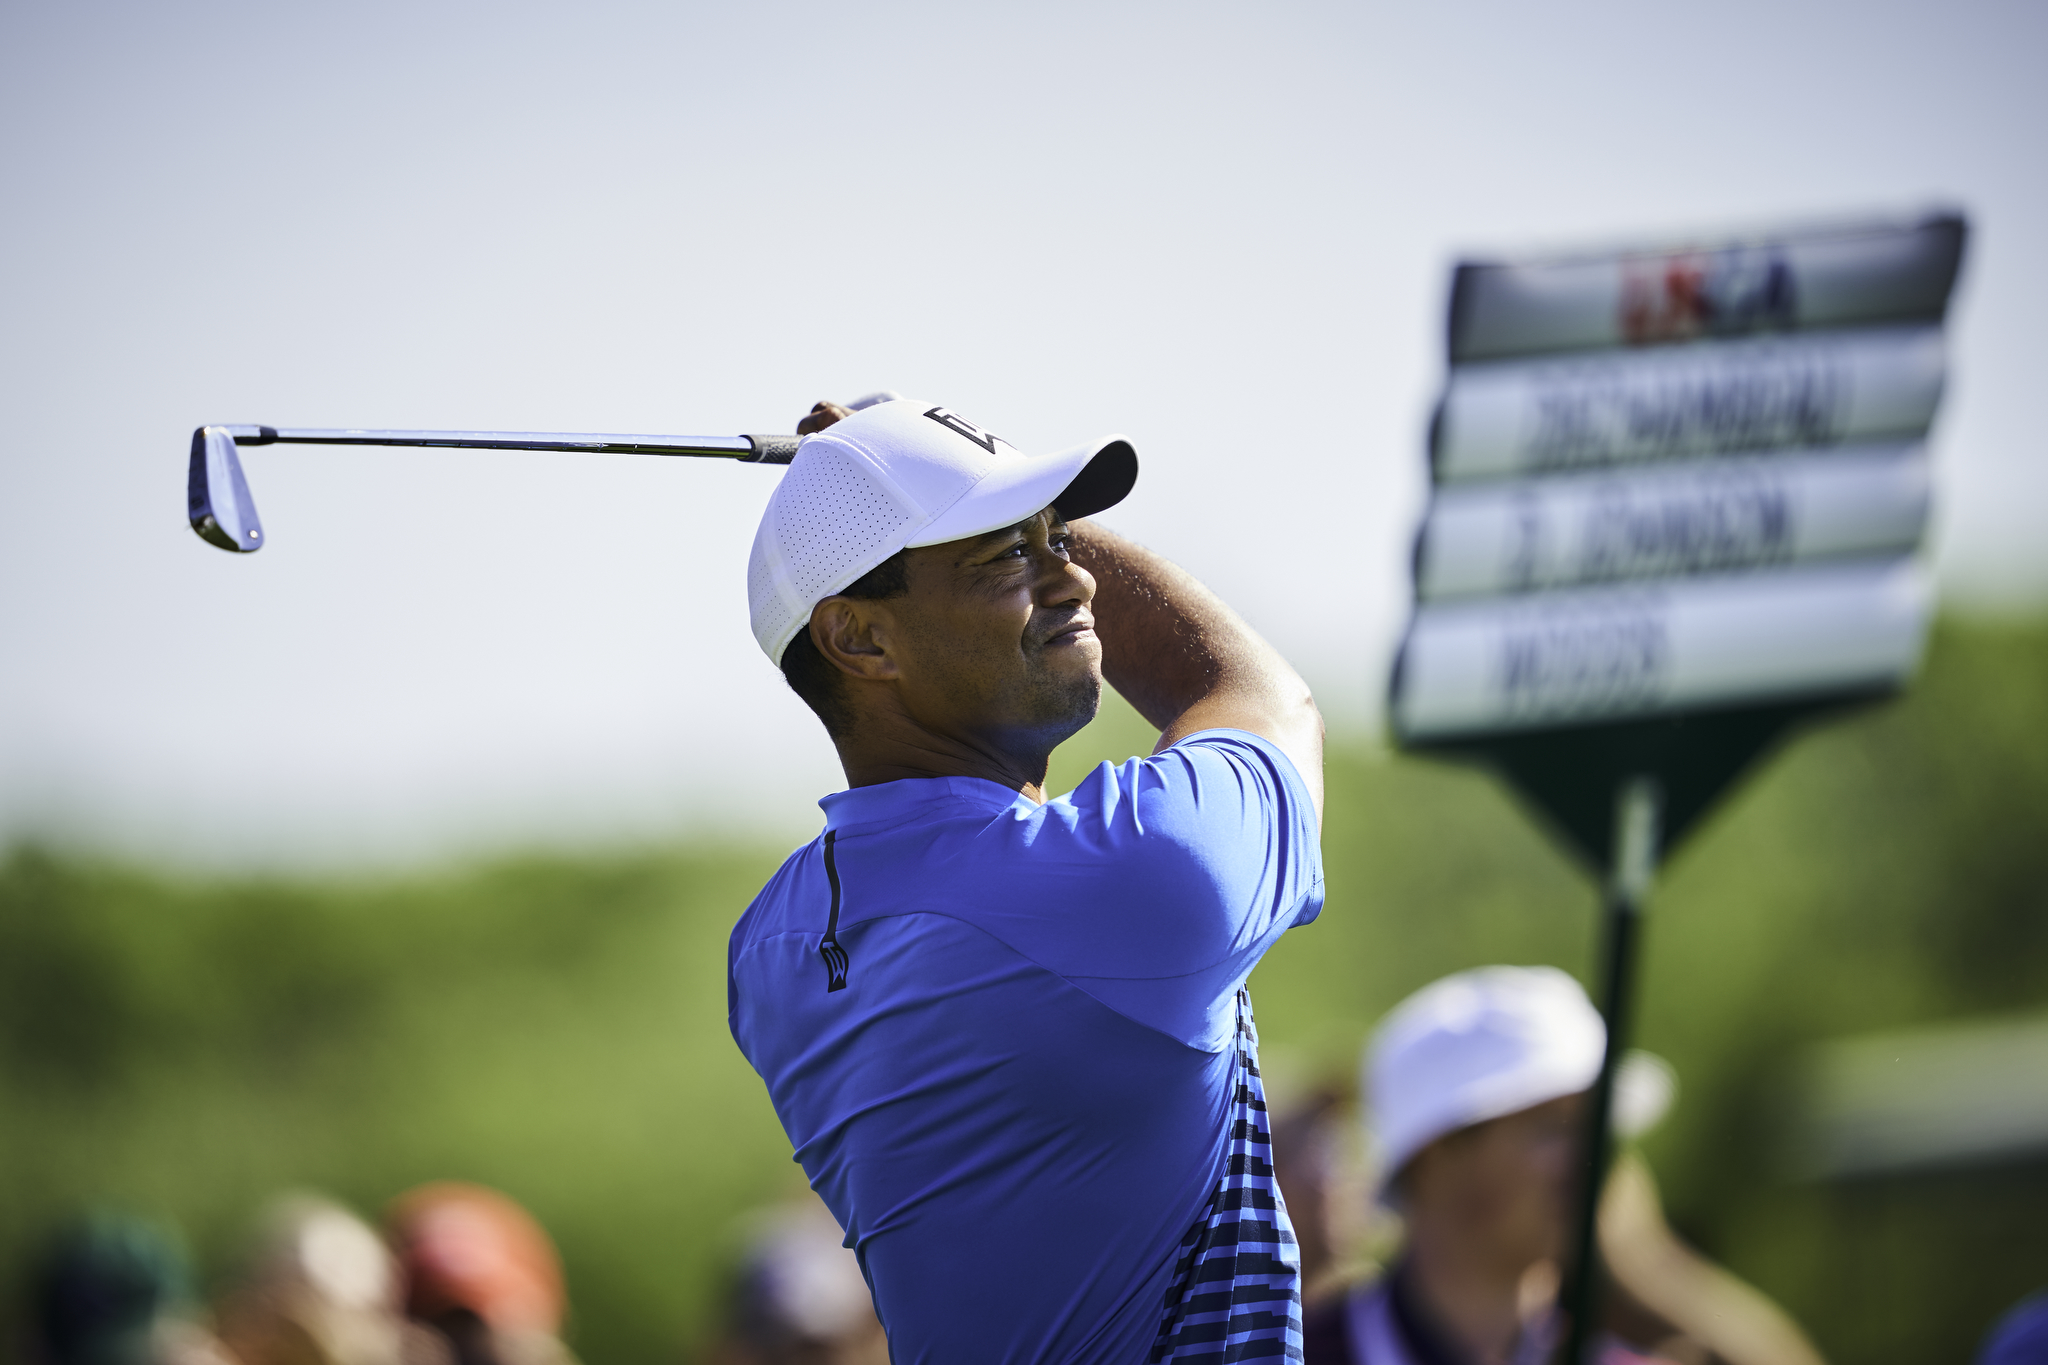 Tiger Woods during a Tuesday practice round.   Sony A9, Sony 400mm f2.8 GM-OSS. ©USGA/Darren Carroll